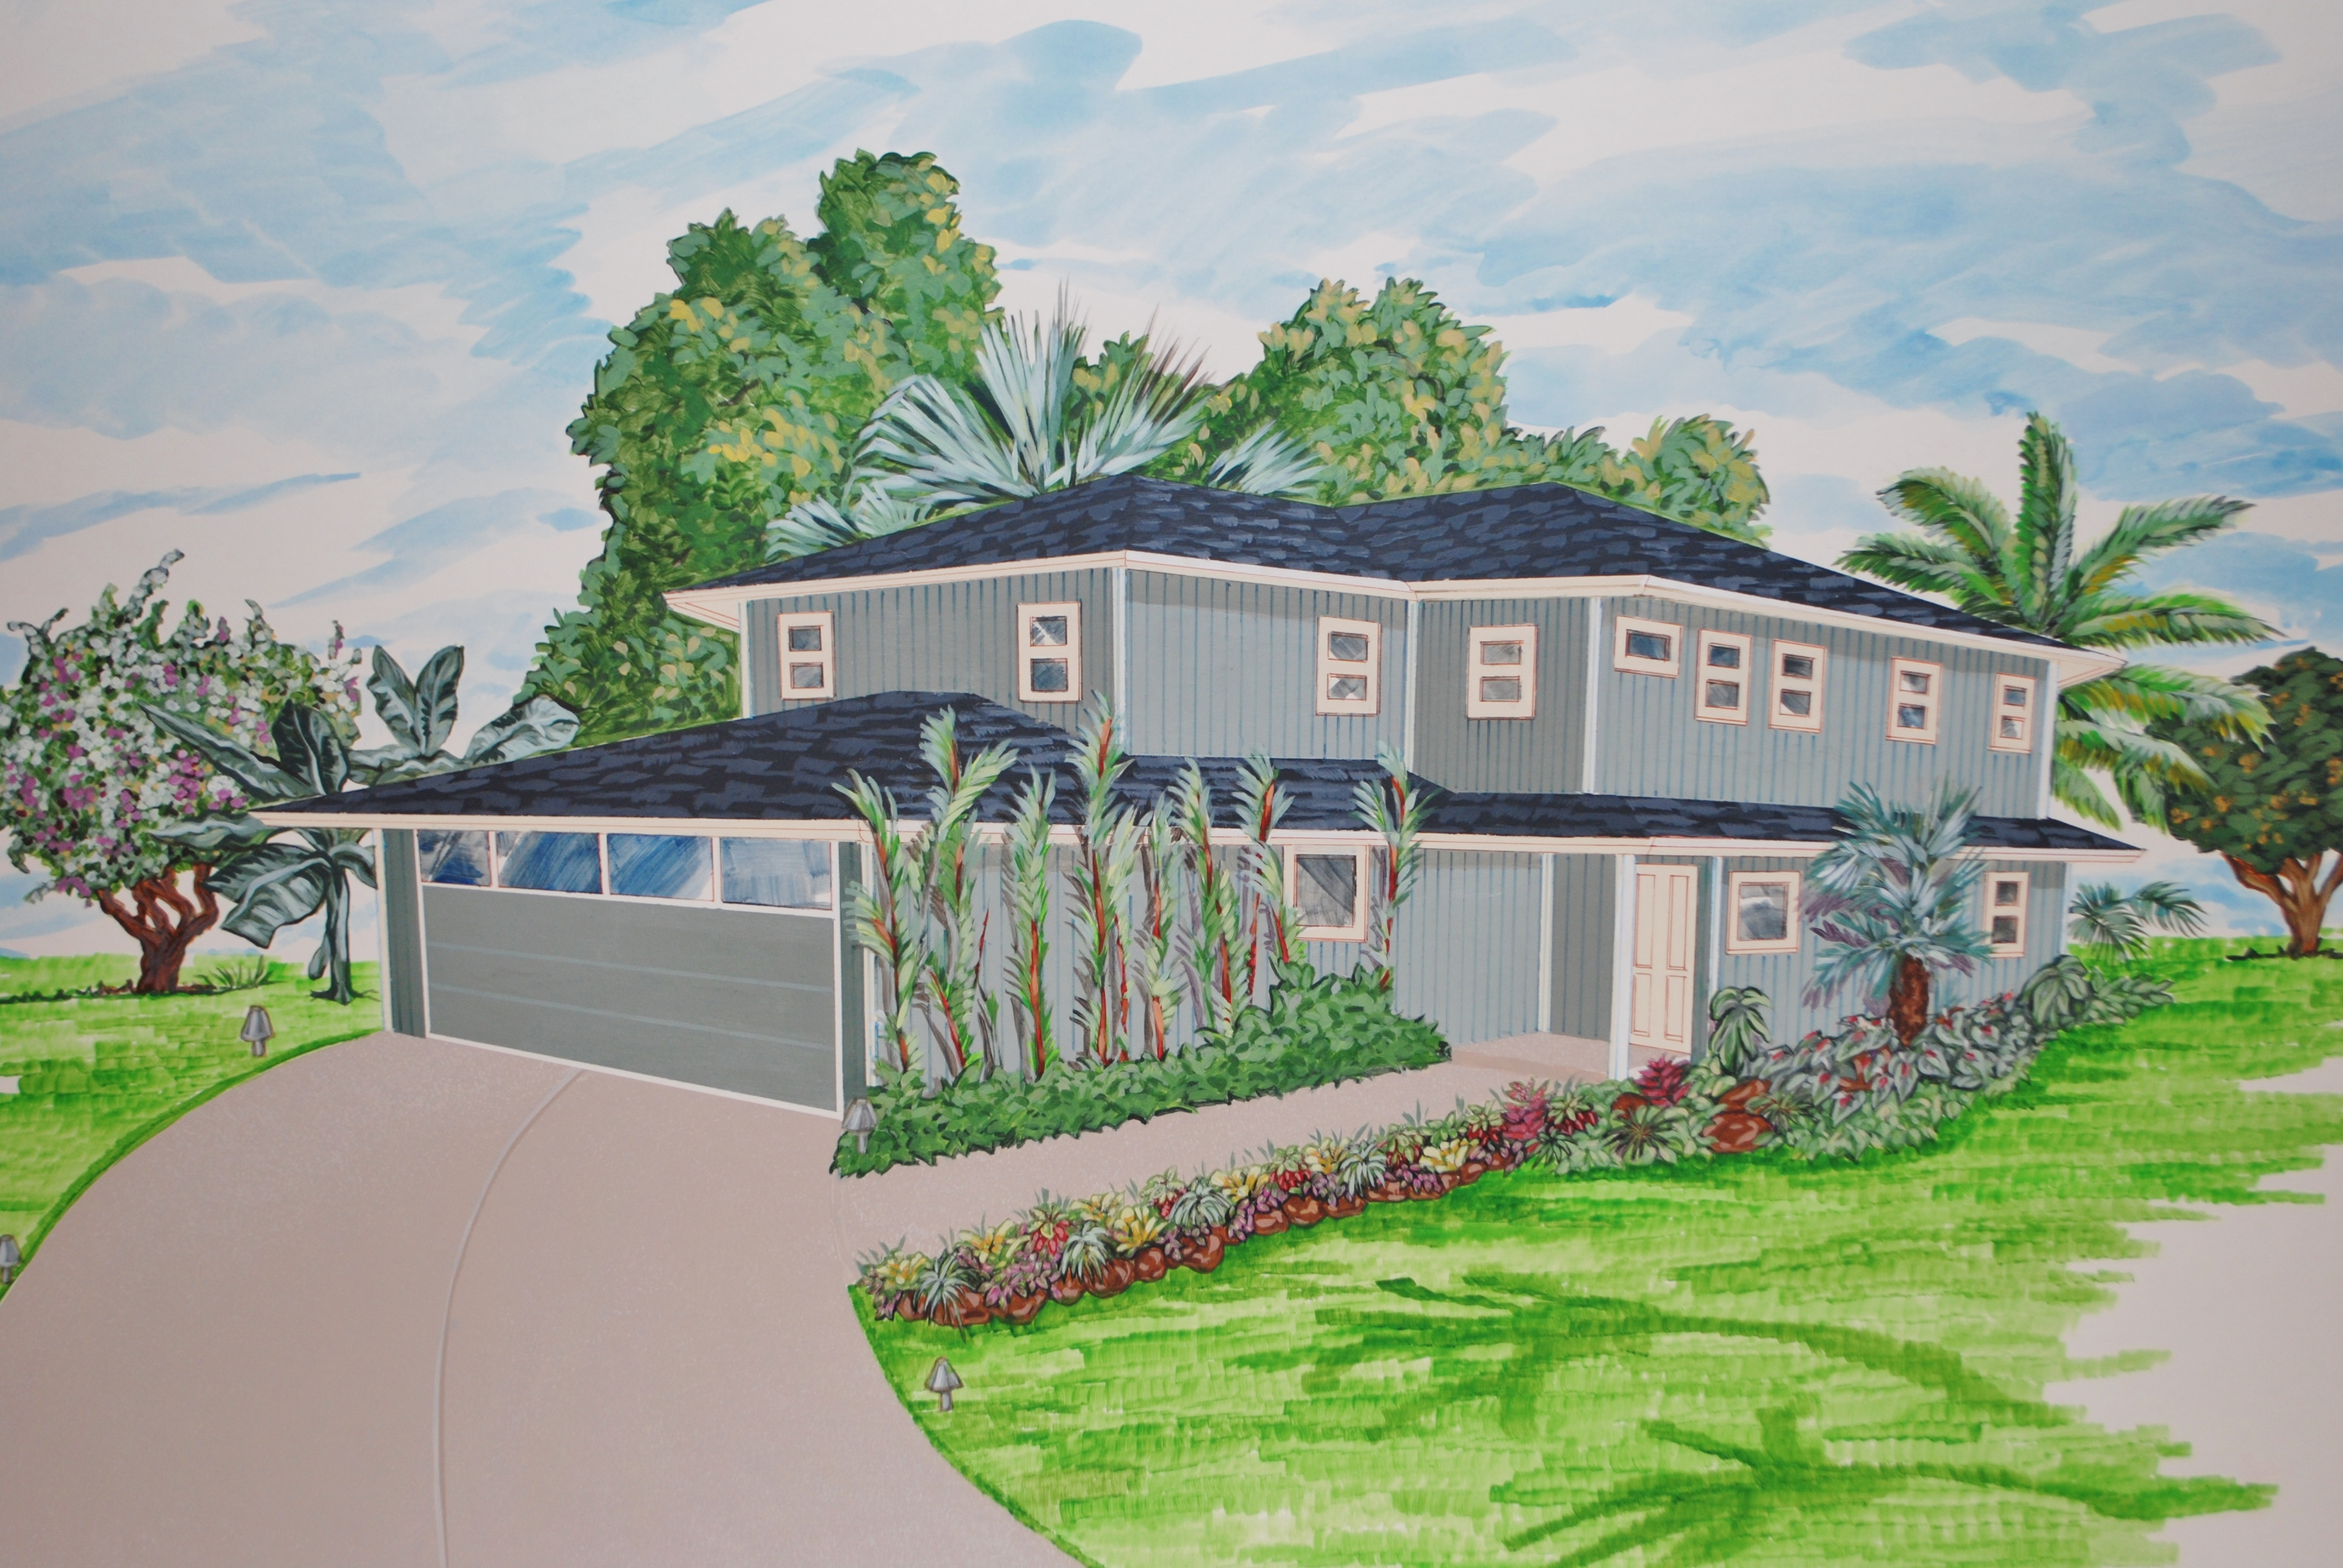 Charming Dream Home Builders #3: Home - Dream Home Builders - GOVERNMENT, COMMERCIAL U0026 RESIDENTIAL ...